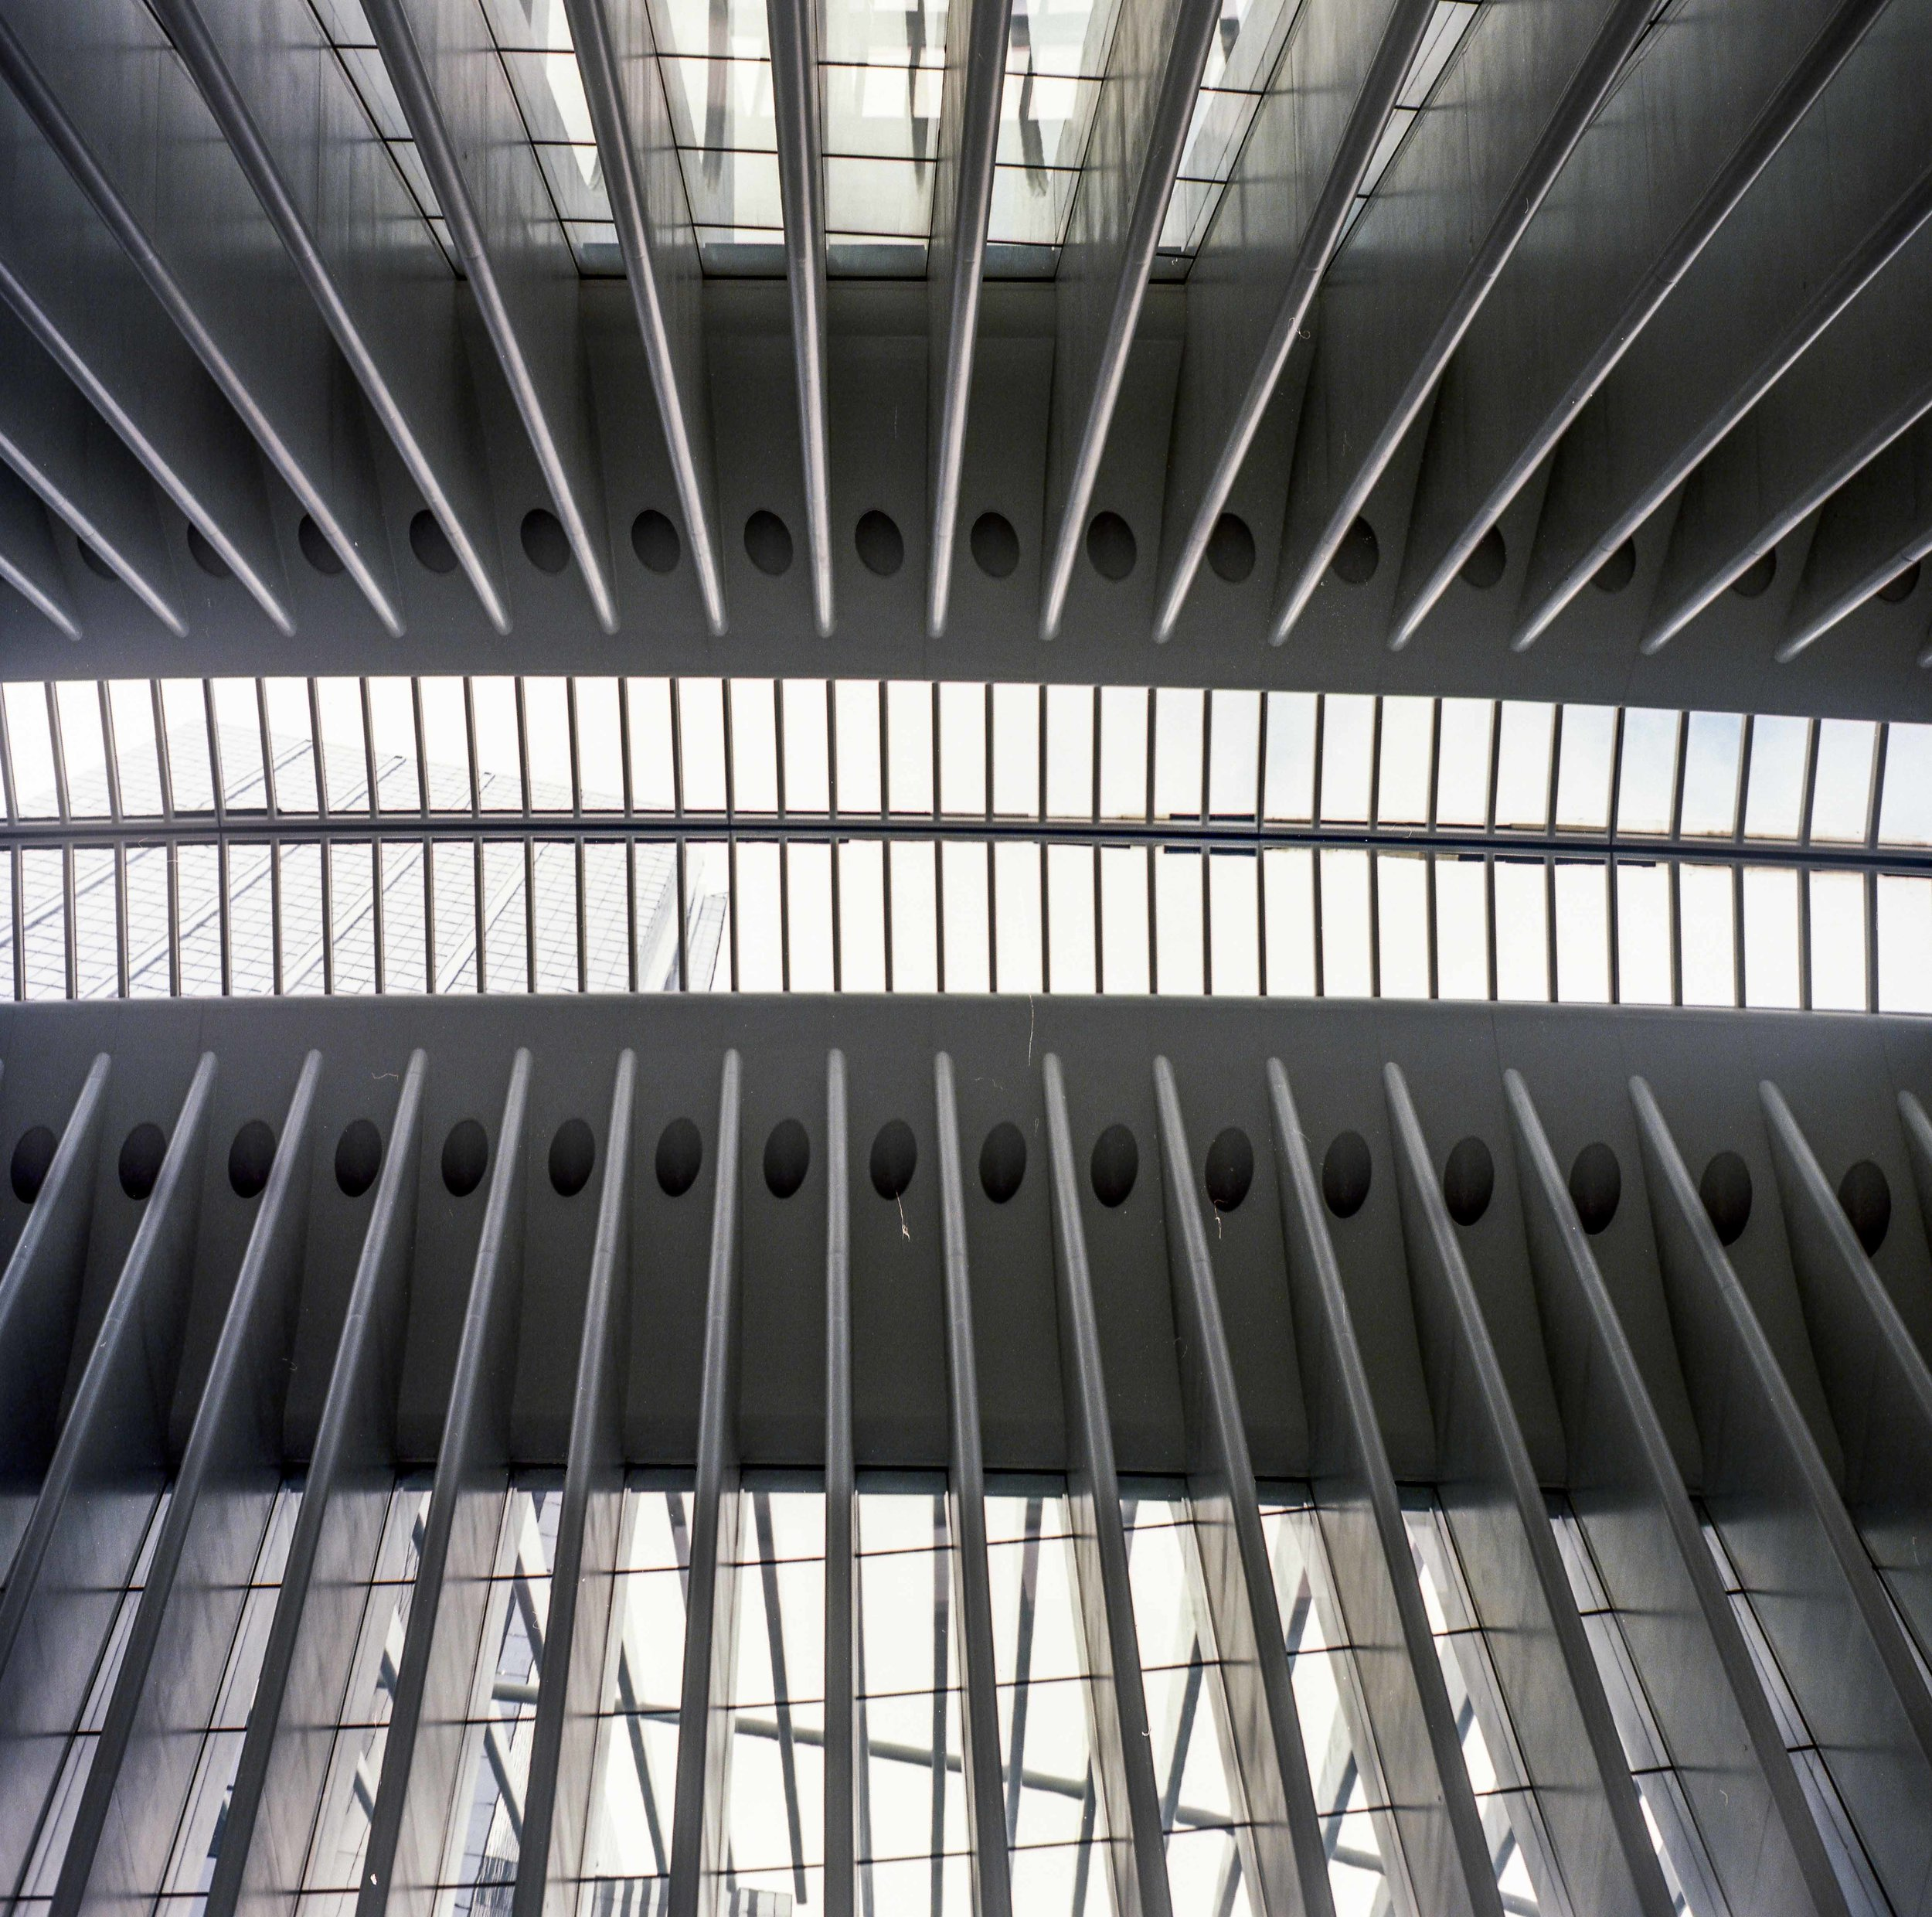 Looking up towards the skylight of the World Trade Center Station in lower Manhattan